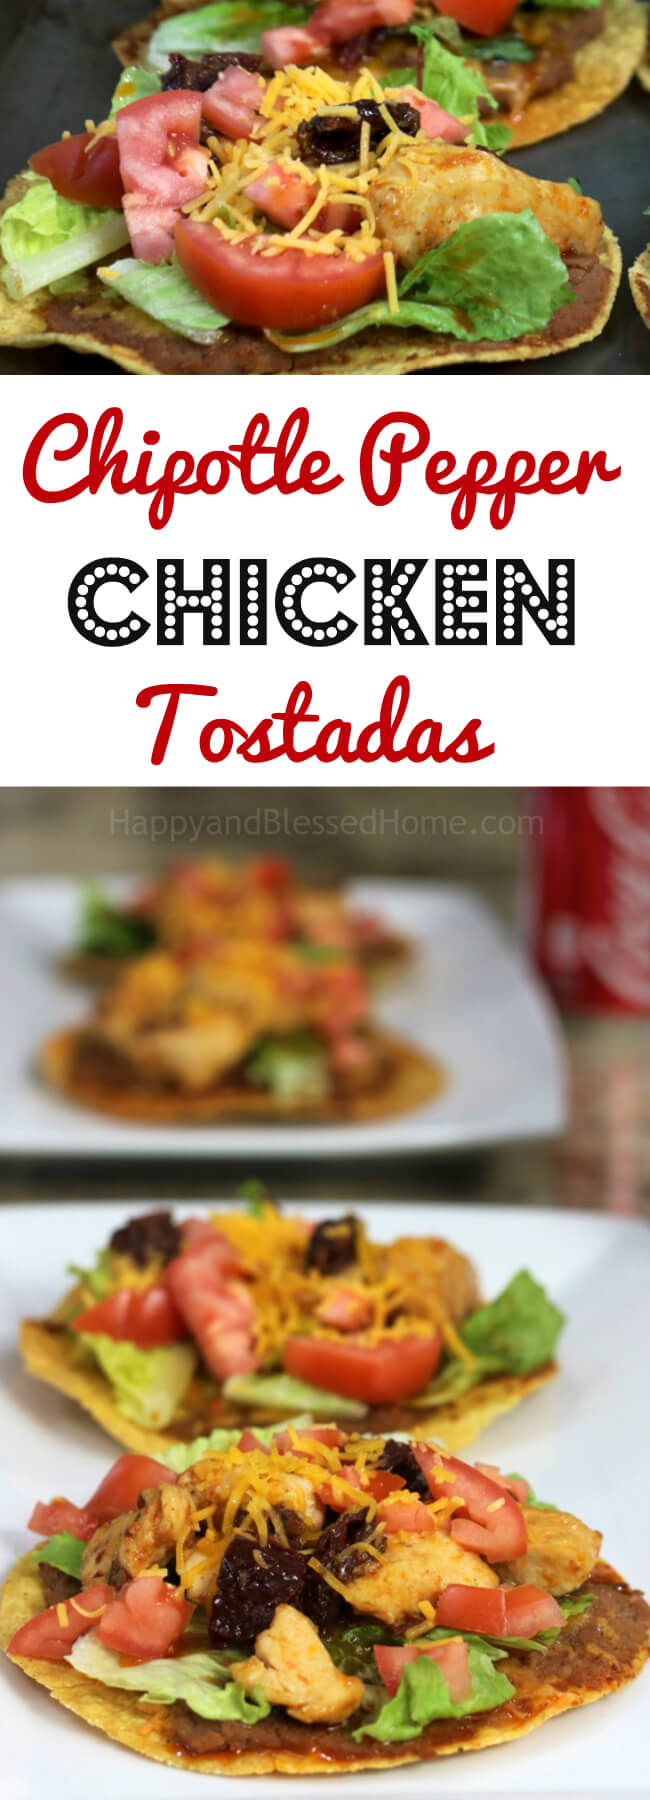 In under 30 minutes you can have a Mexican open faced sandwich Chipotle Pepper Chicken Tostadas